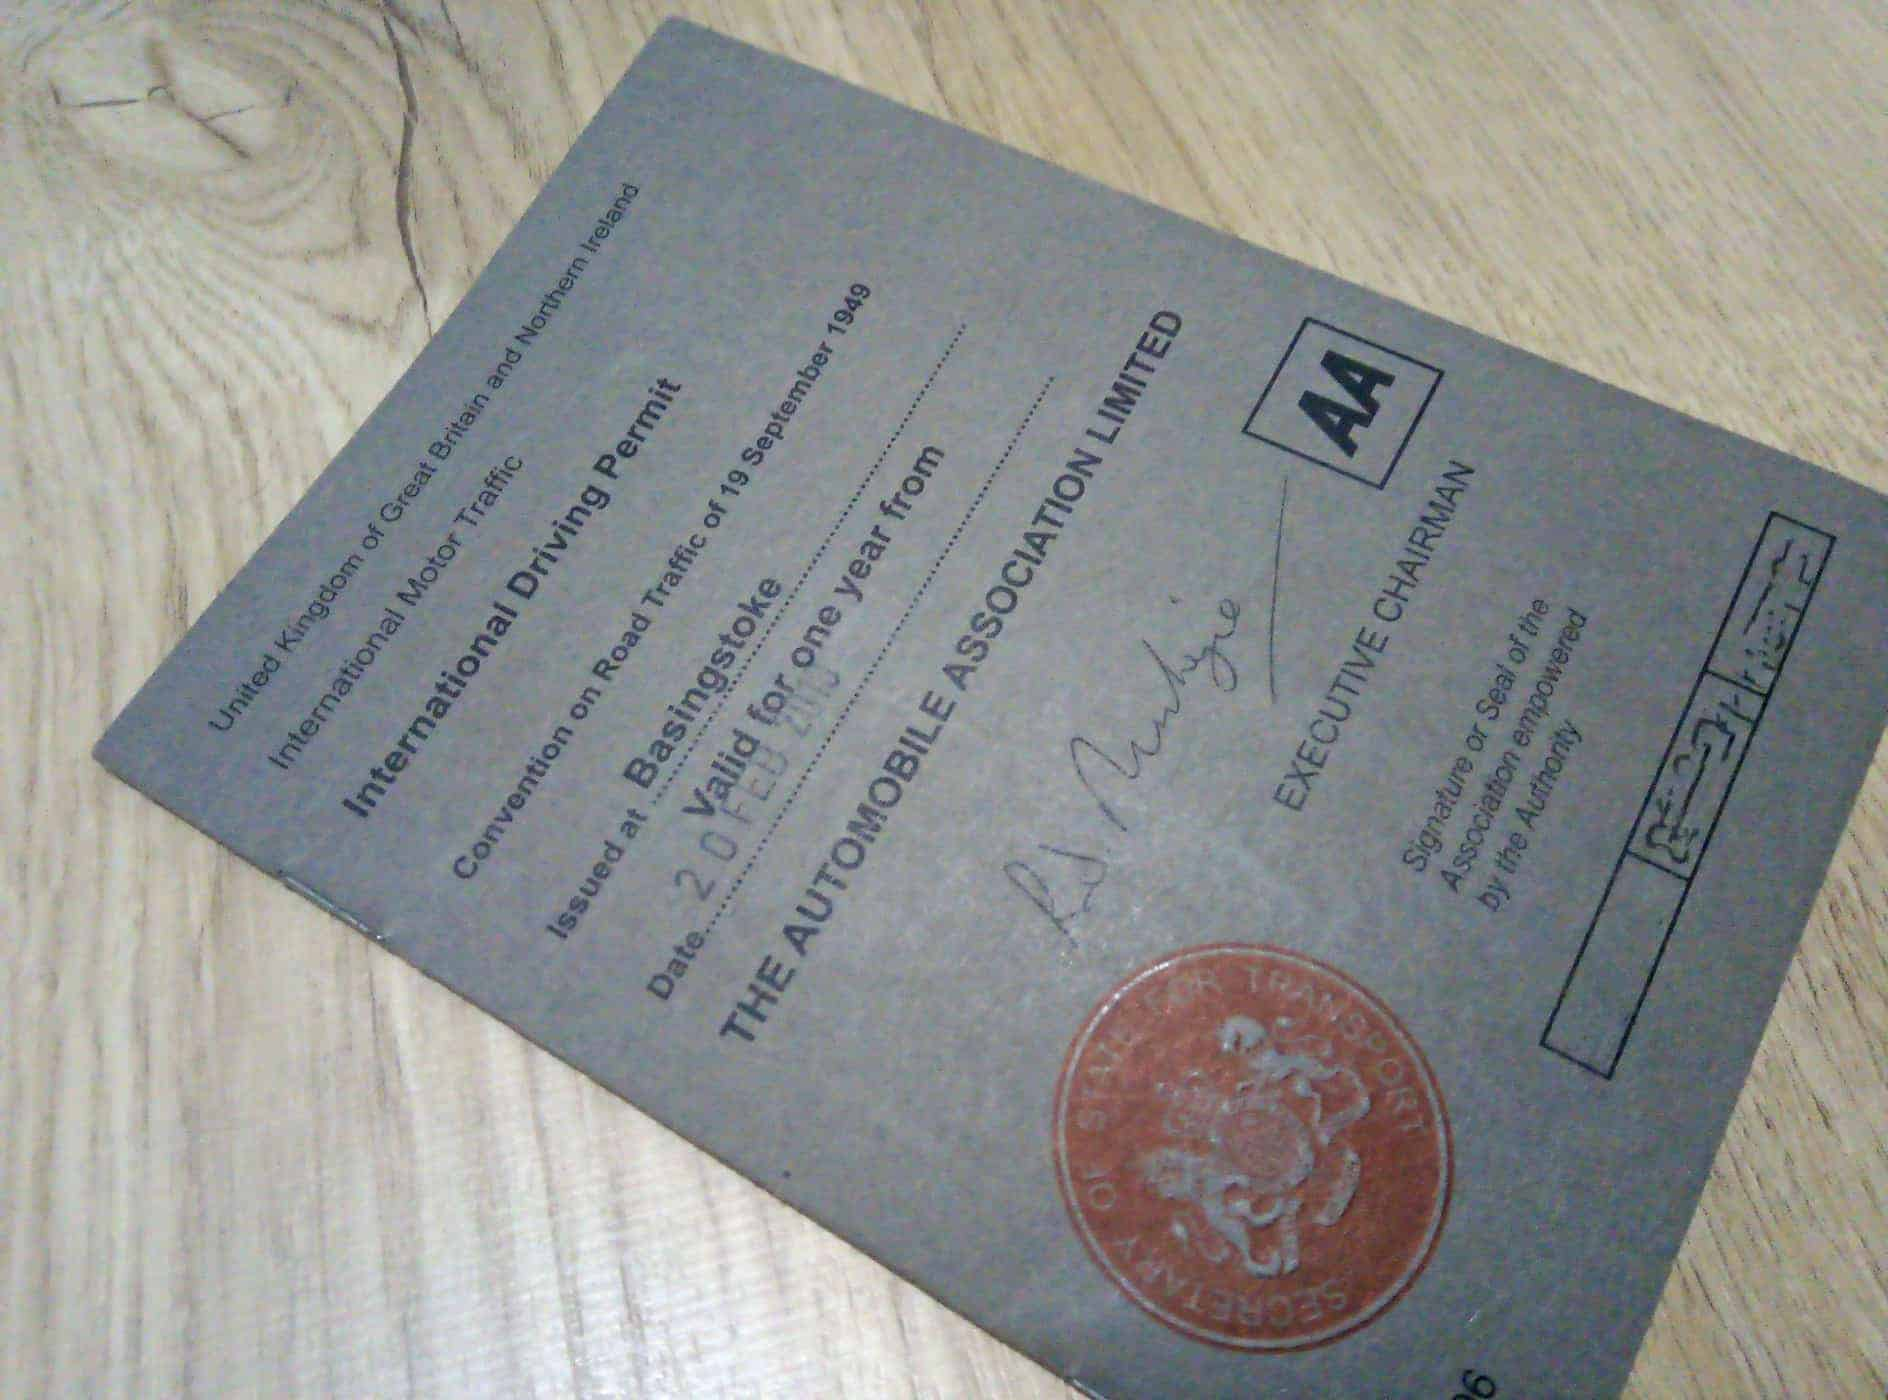 An International Driving Permit from the UK.